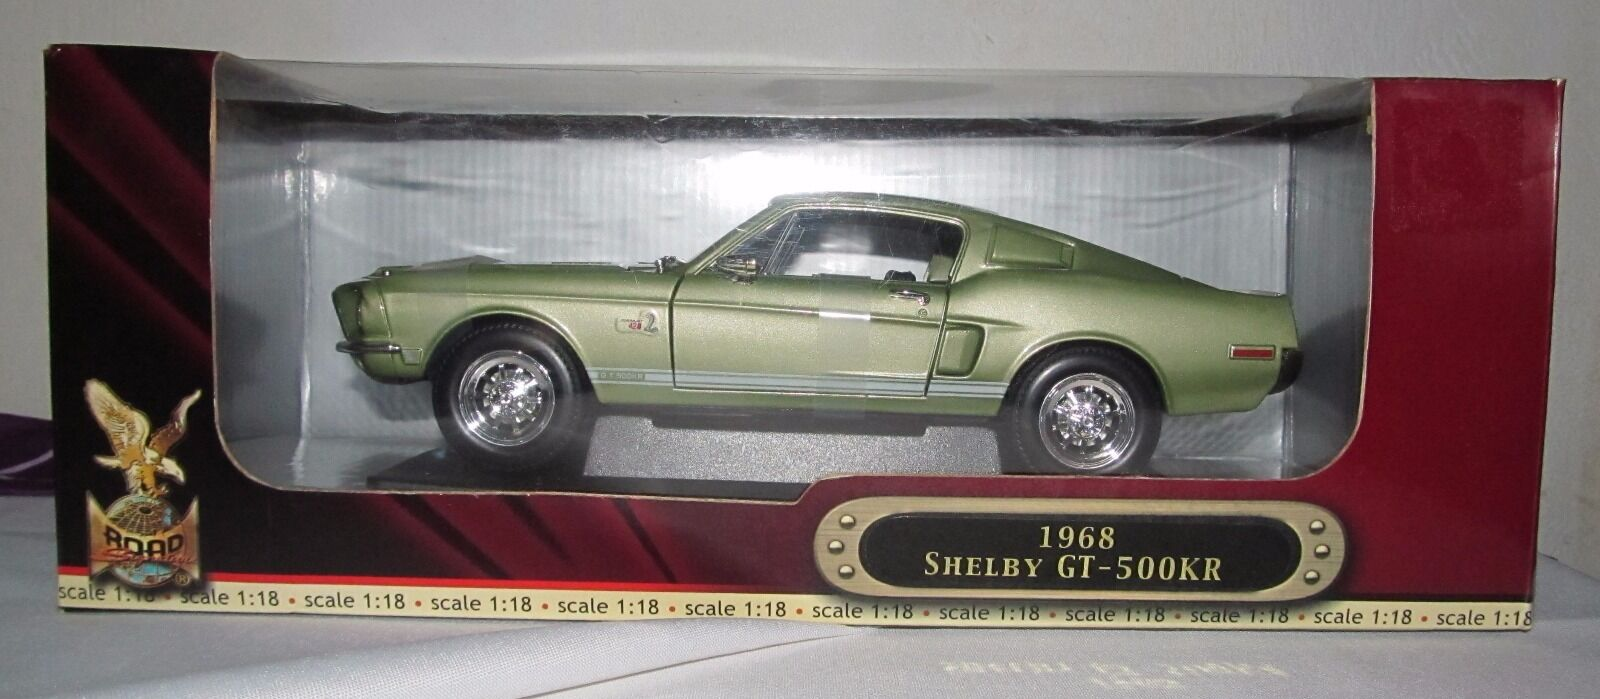 Yat Ming 68 Shelby GT-500 KR Deluxe Edition Die Cast 1 18 hecho a mano